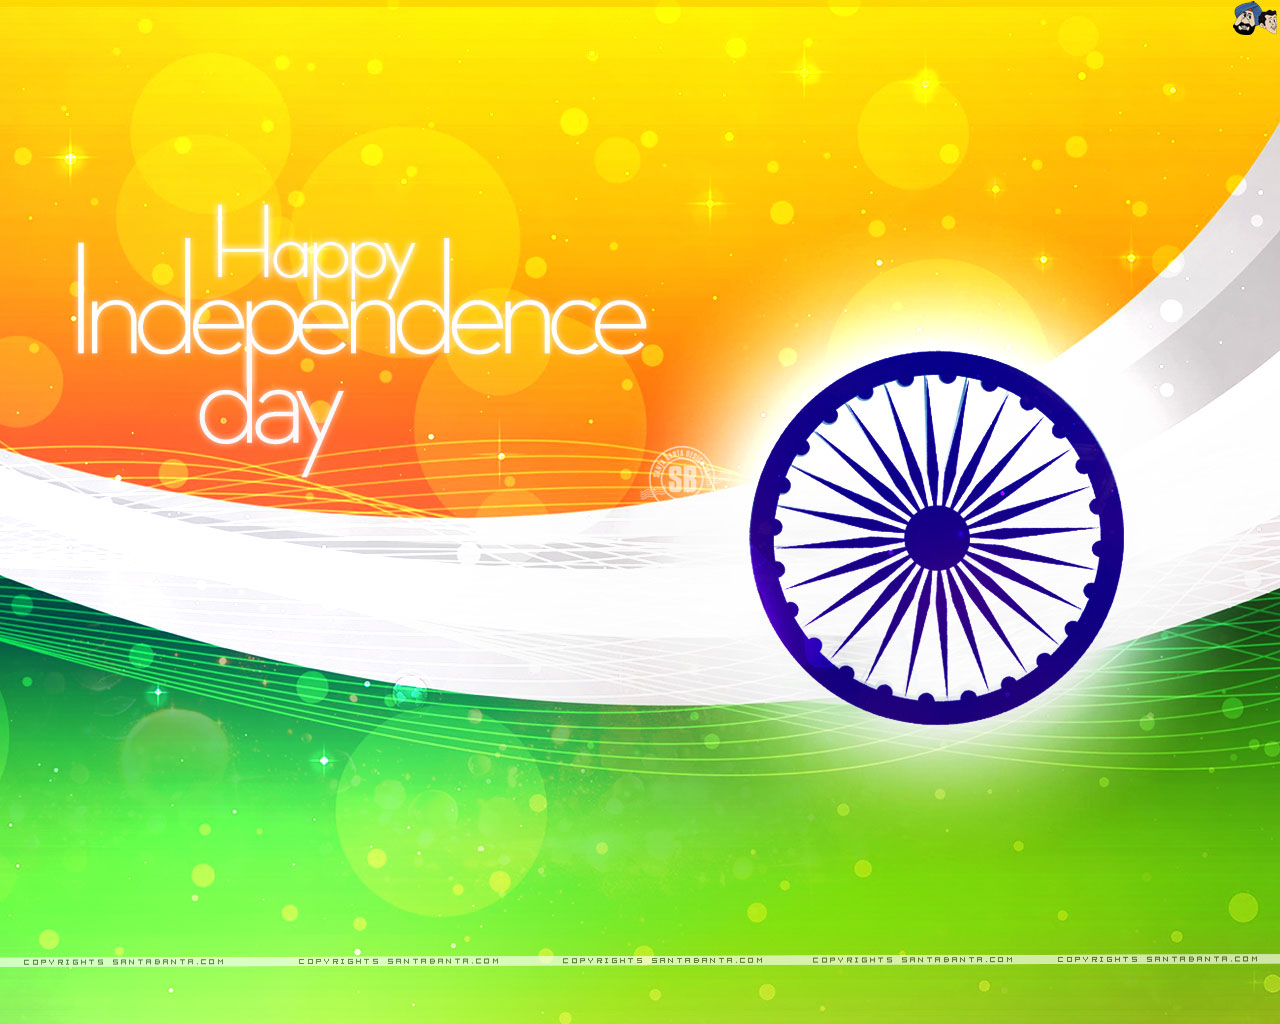 funny wallpapers and videos Independence Day 15 August 1947 India HD 1280x1024